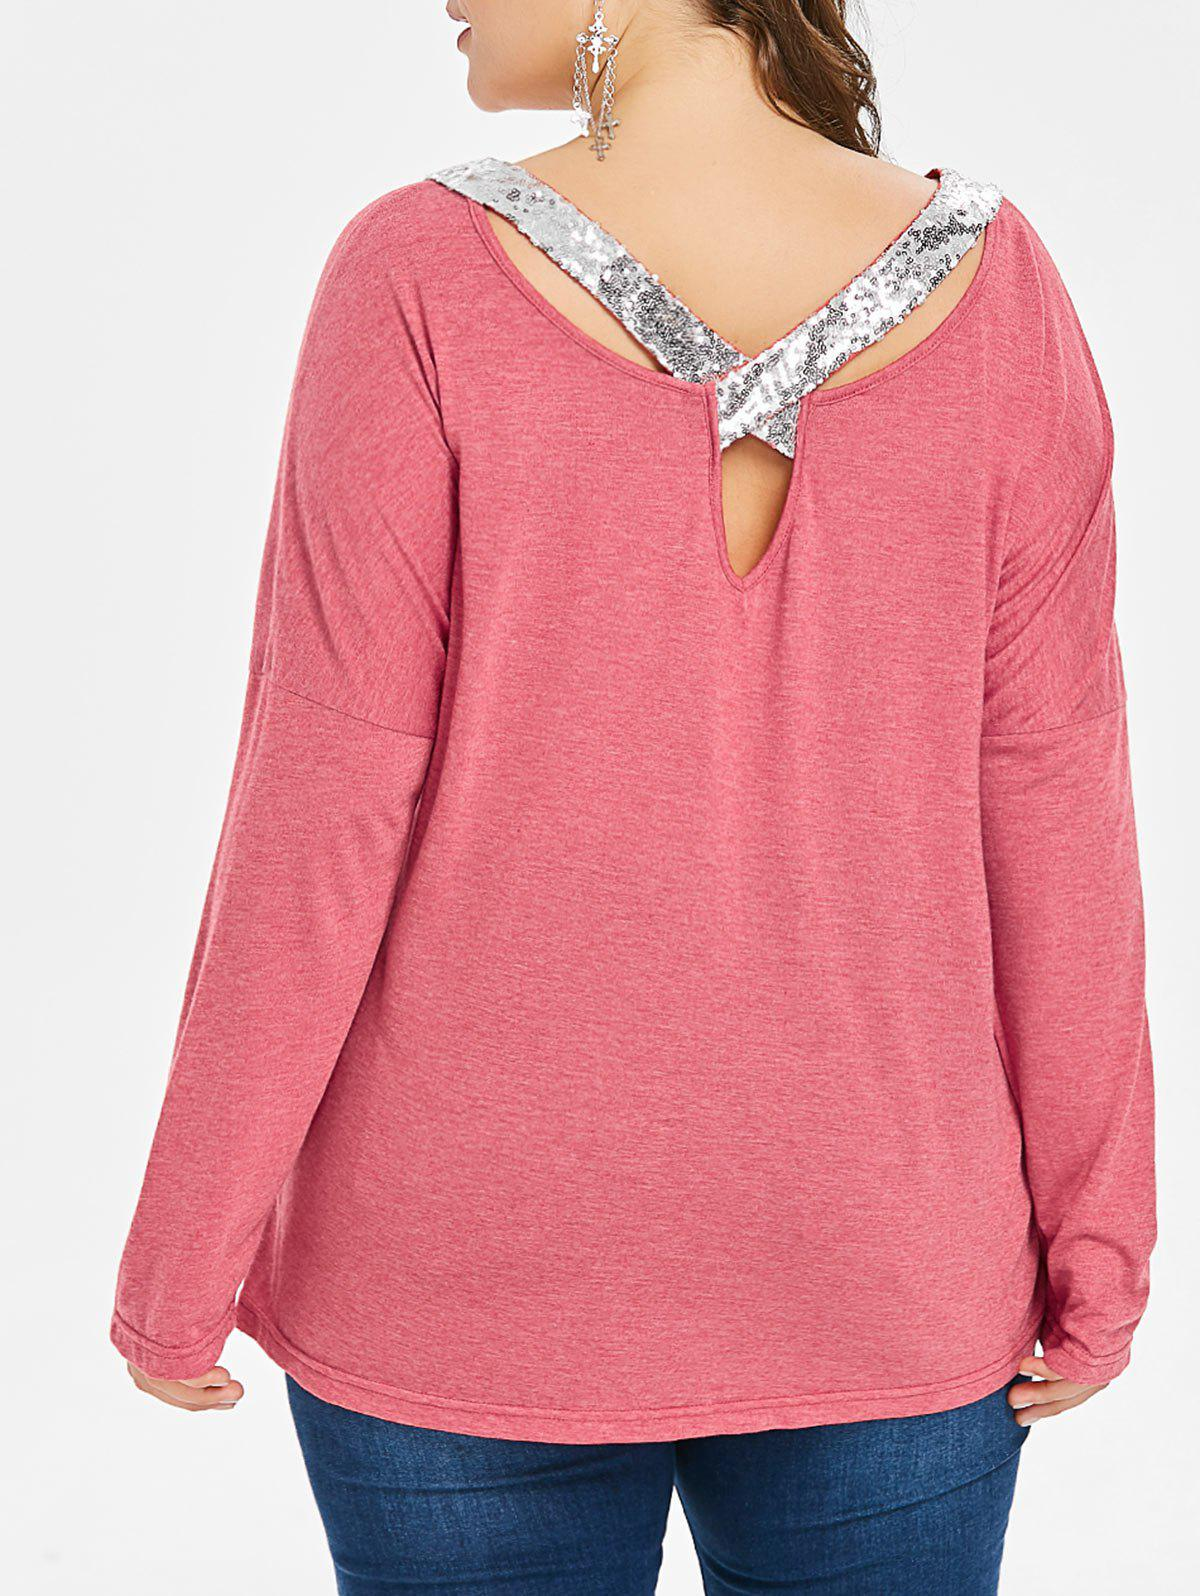 Chic Plus Size Sequined Detail Long Sleeve T-shirt